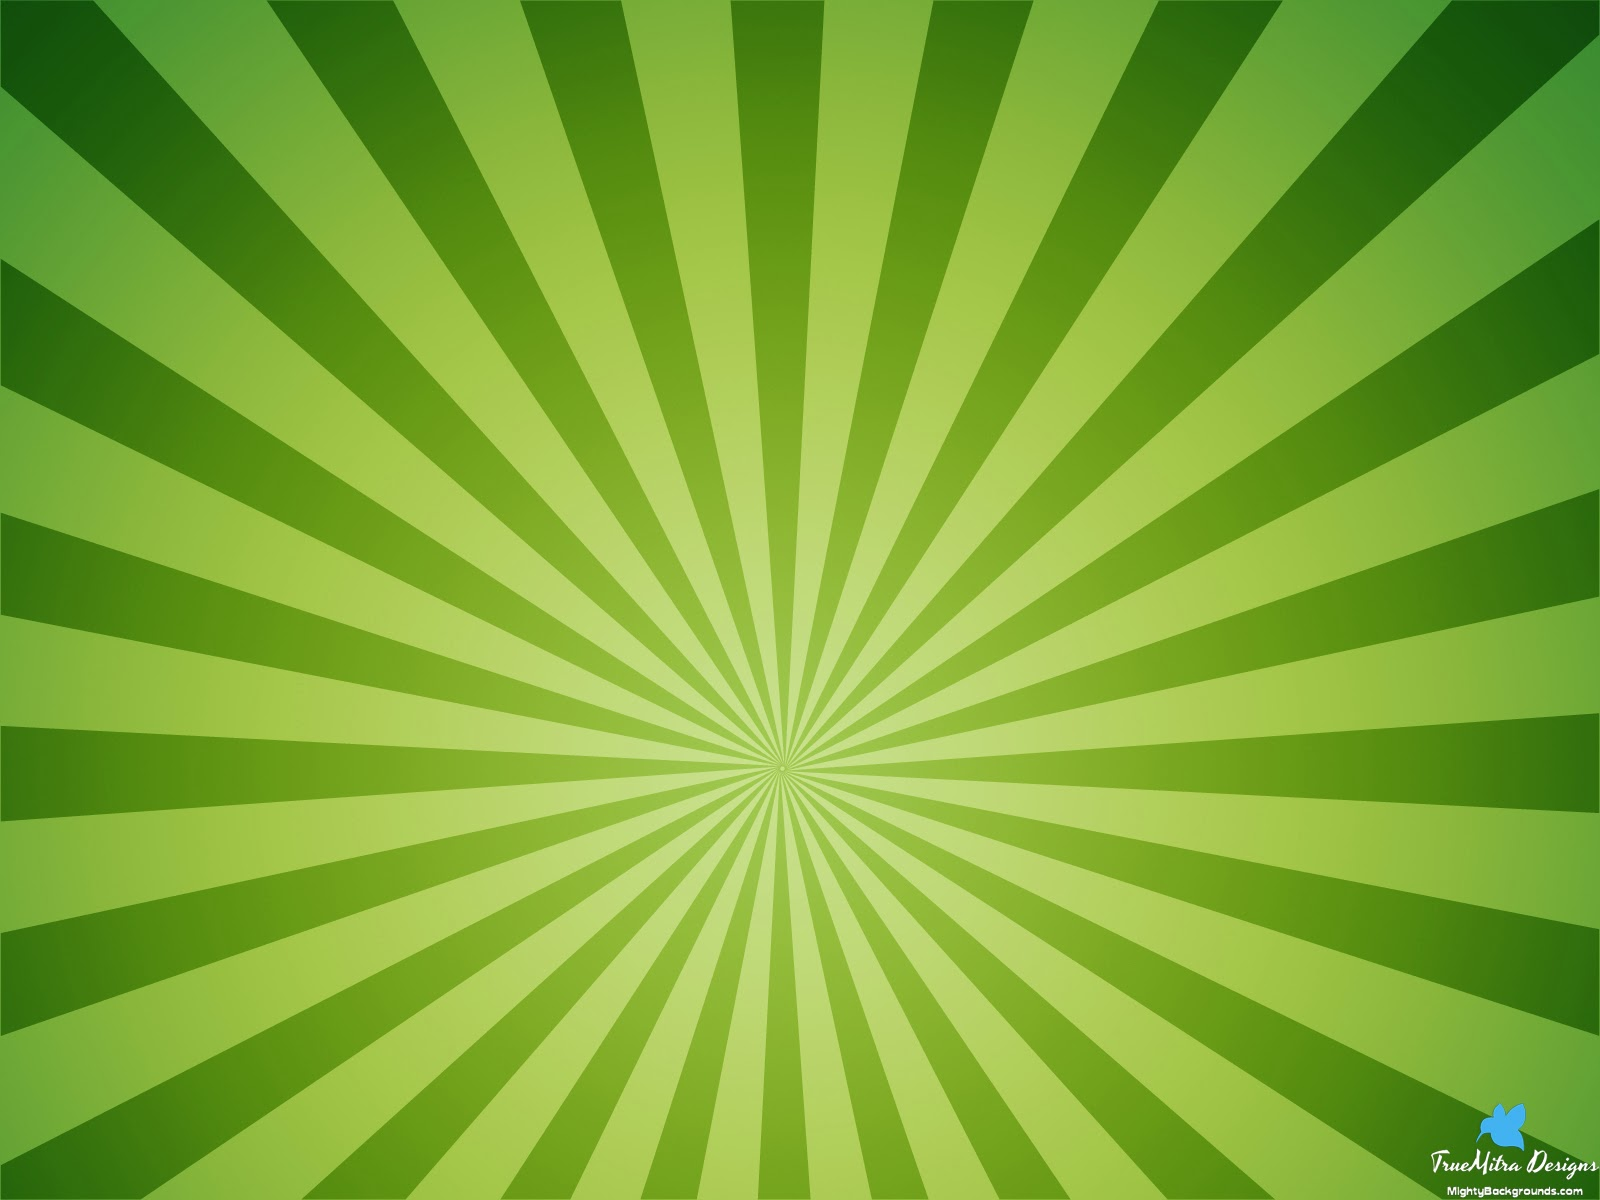 green sunburst background - photo #7